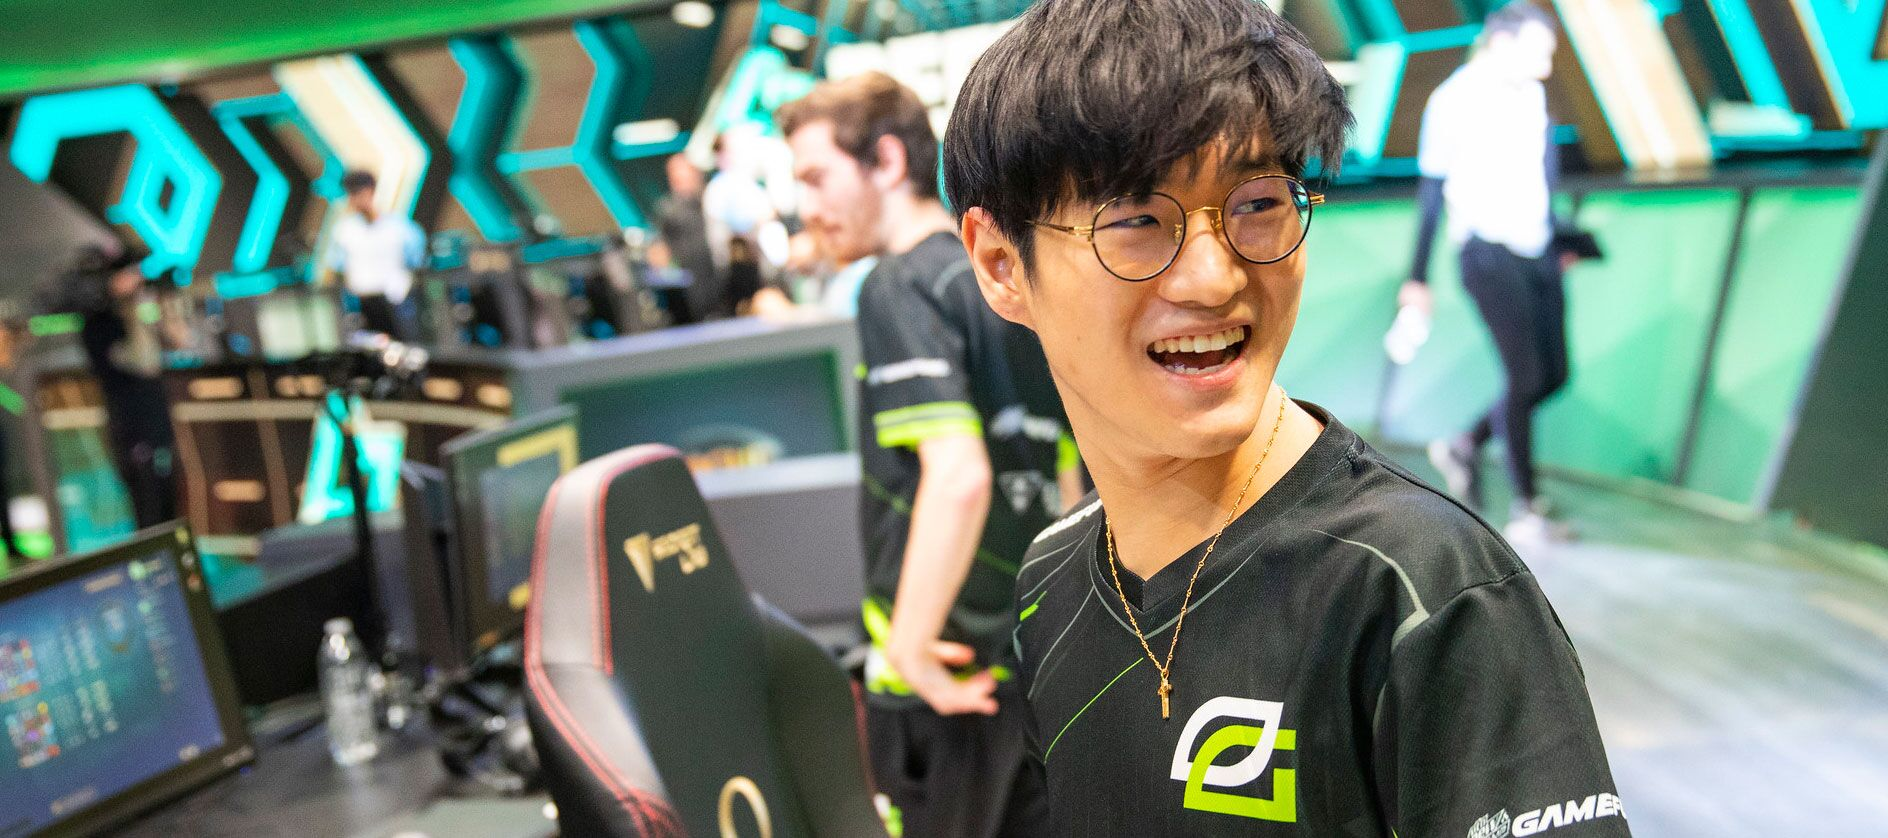 League of Legends LCS: Free Agency Frenzy Day 3 Roundup